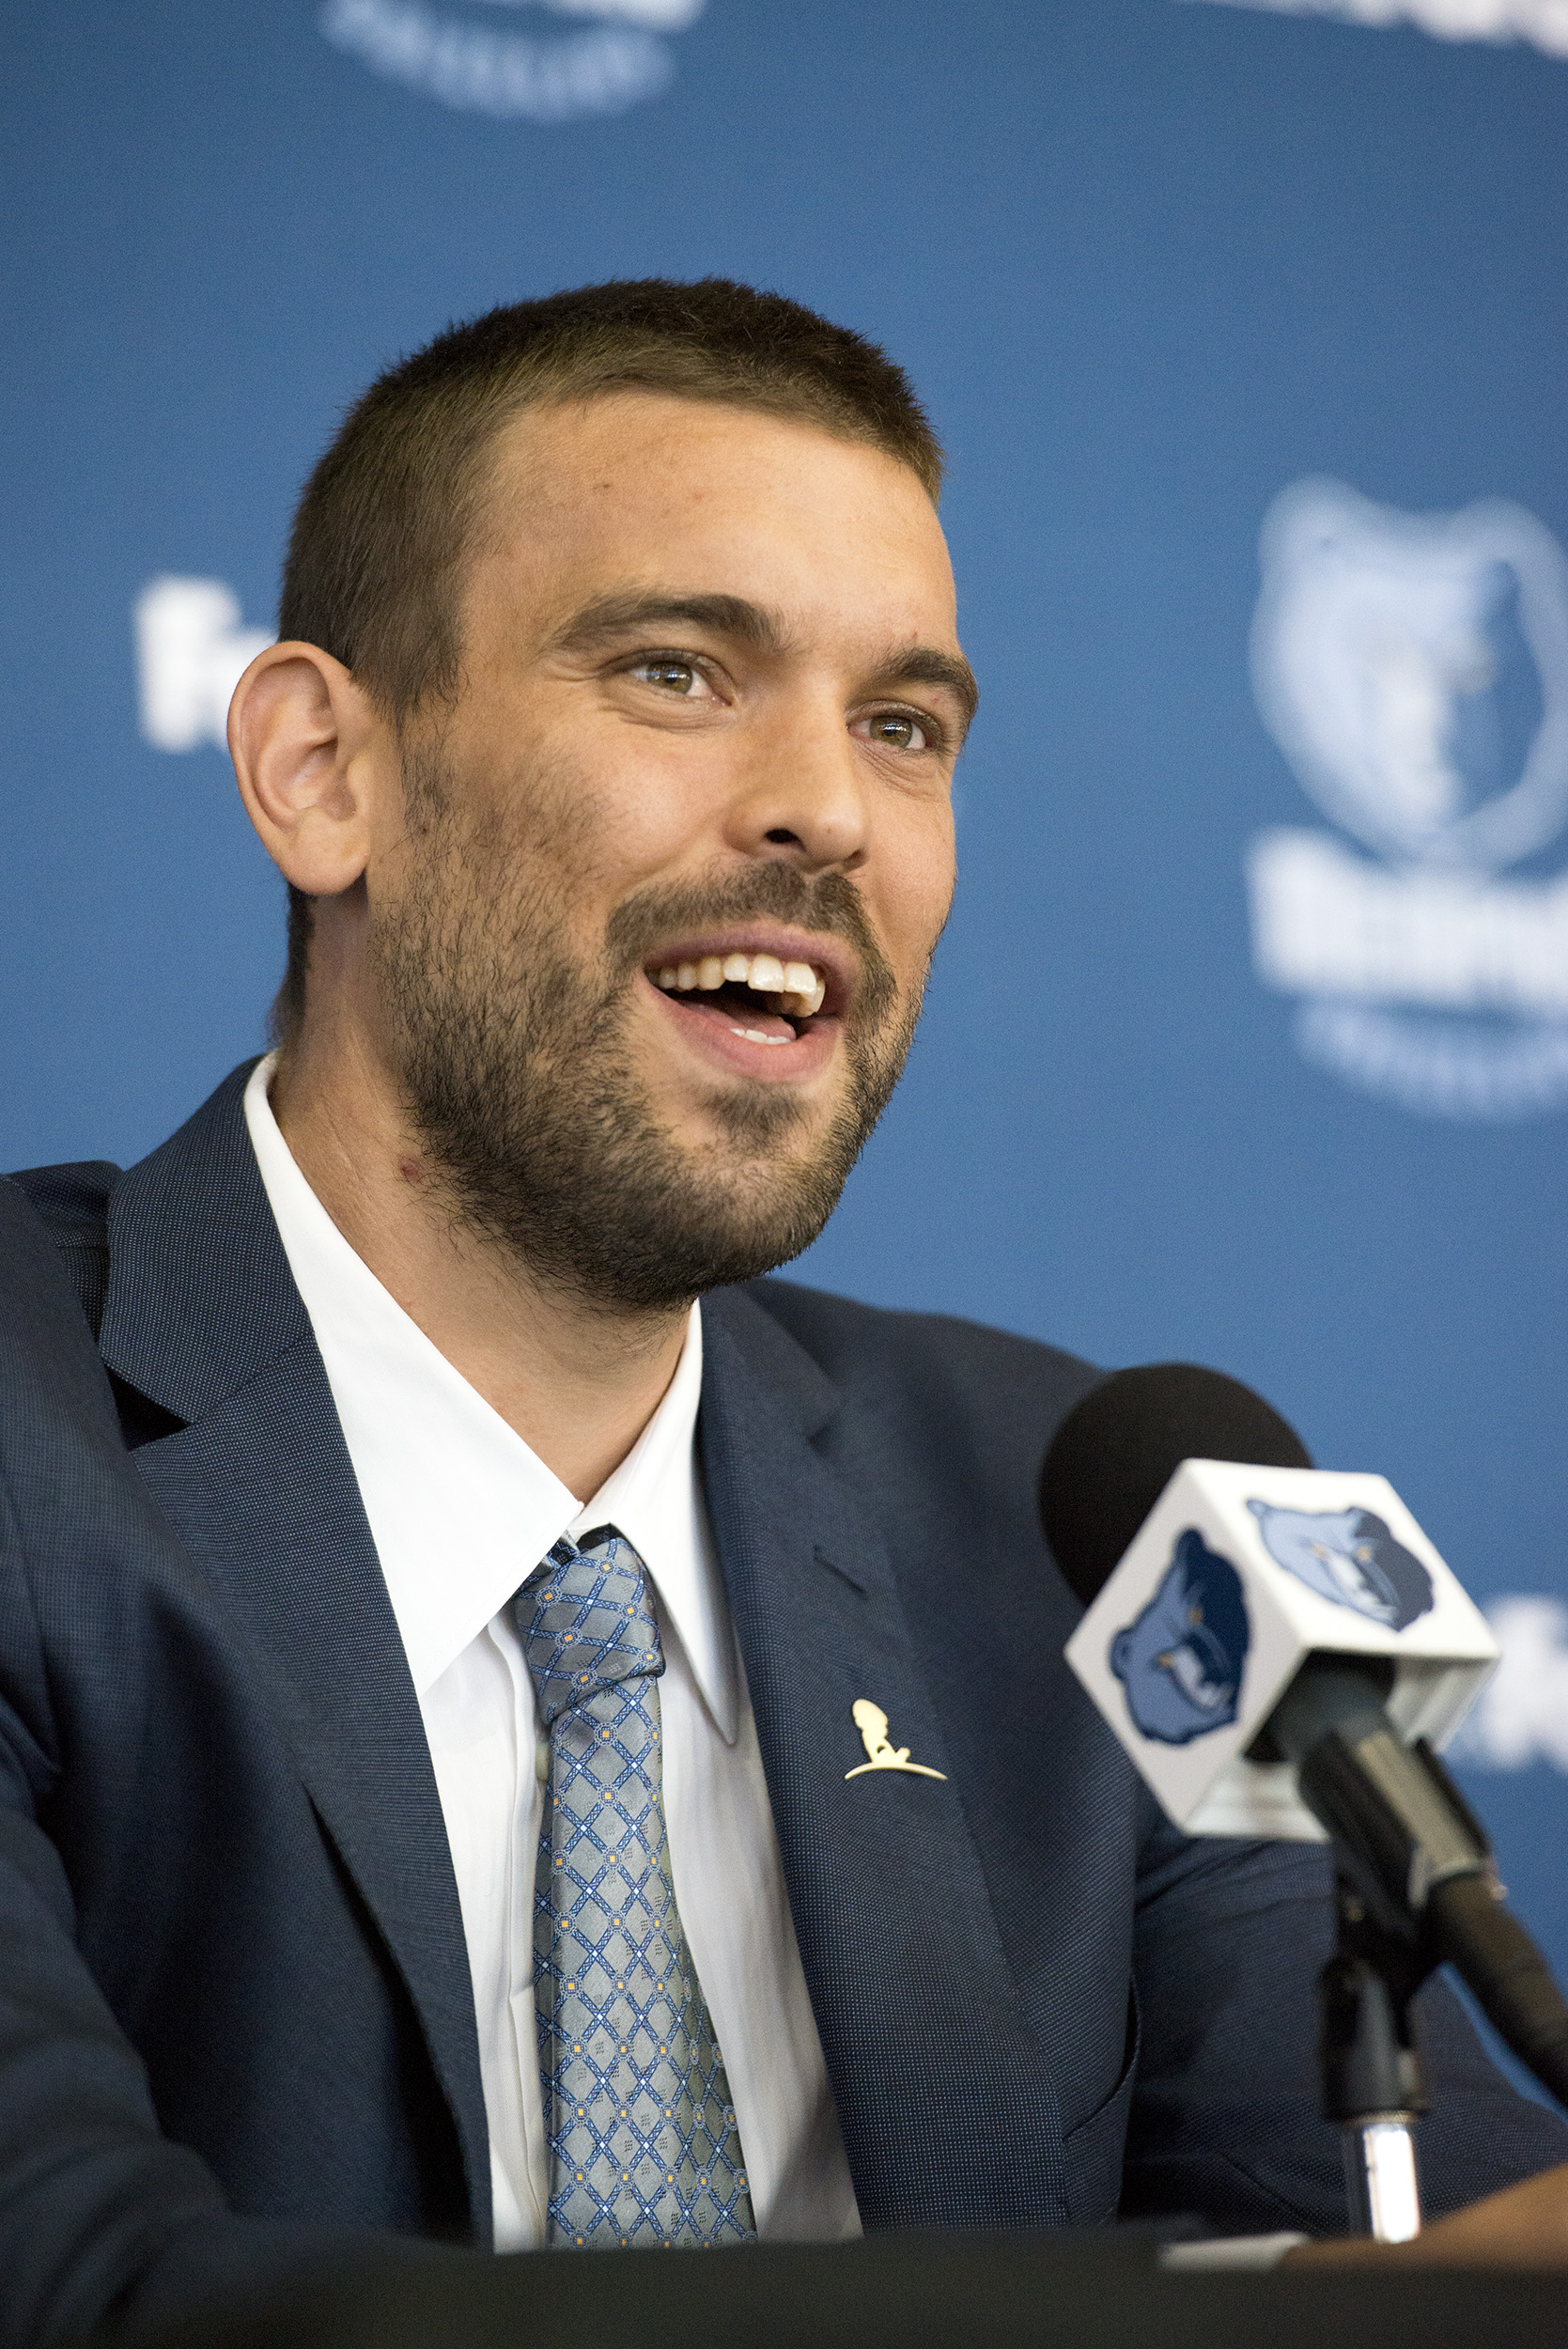 MEMPHIS, TN - JULY 14:  Marc Gasol #33 of the Memphis Grizzlies addresses the media during a press conference on July 14, 2015 at FedExForum in Memphis, Tennessee.  (Photo by Brandon Dill/NBAE via Getty Images)